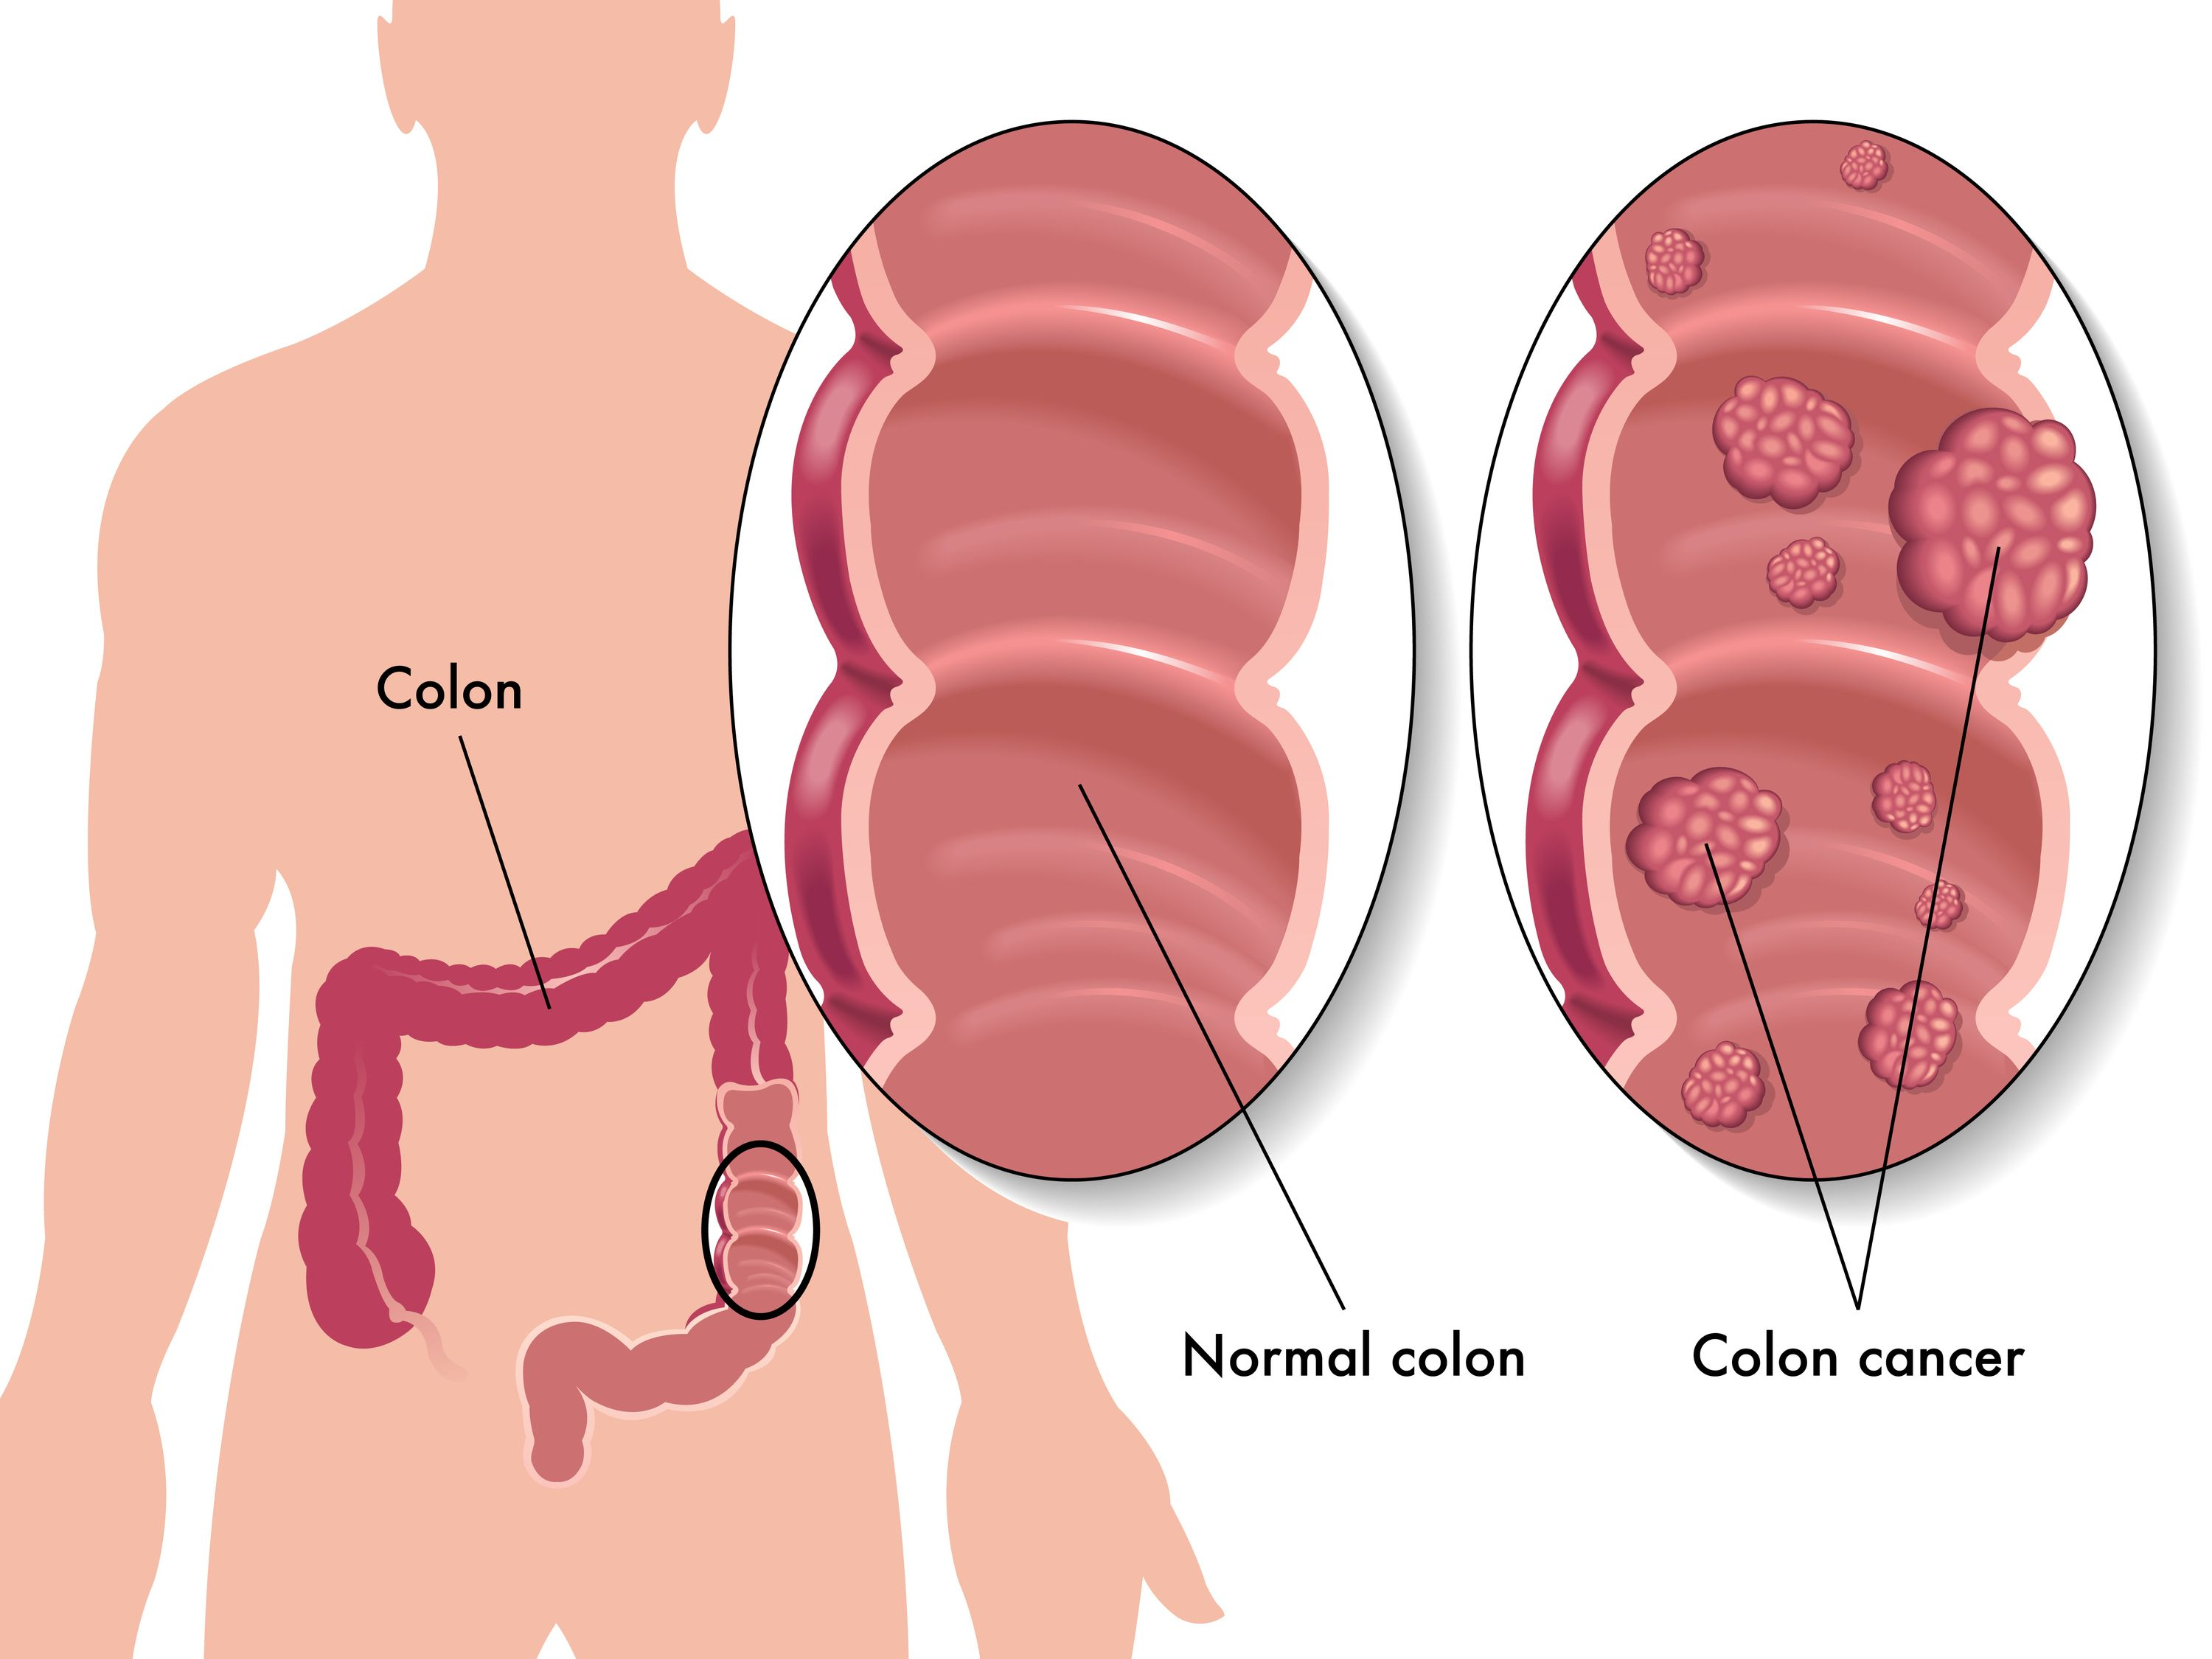 pathophysiology of colon cancer diagram p bass wiring a polyp or adenoma is an area abnormal tissue that indicates precancerous changes. not all ...